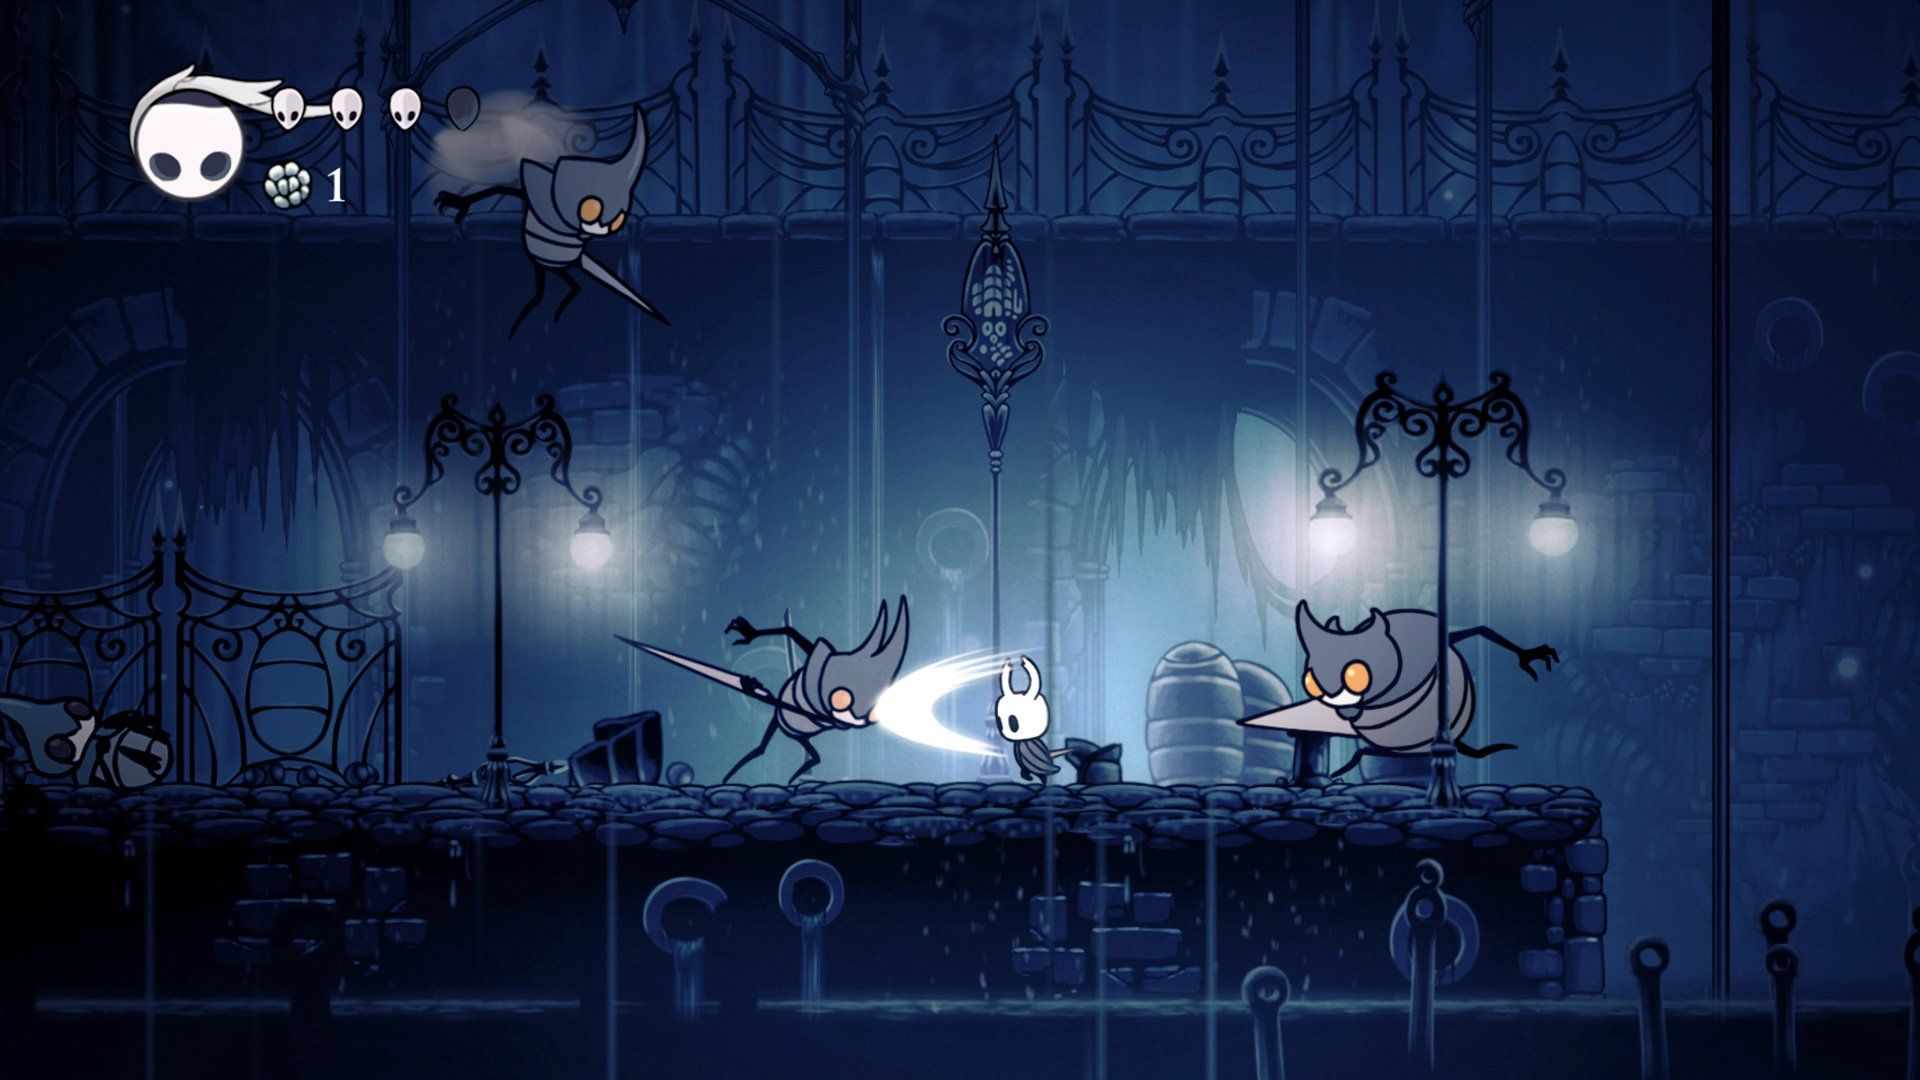 Hollow Knight S Hidden Dreams Update Is Now Set For August So Far So Good I M Still Holding Out On Hollow Knight Until It Knight Games Knight Classic Games